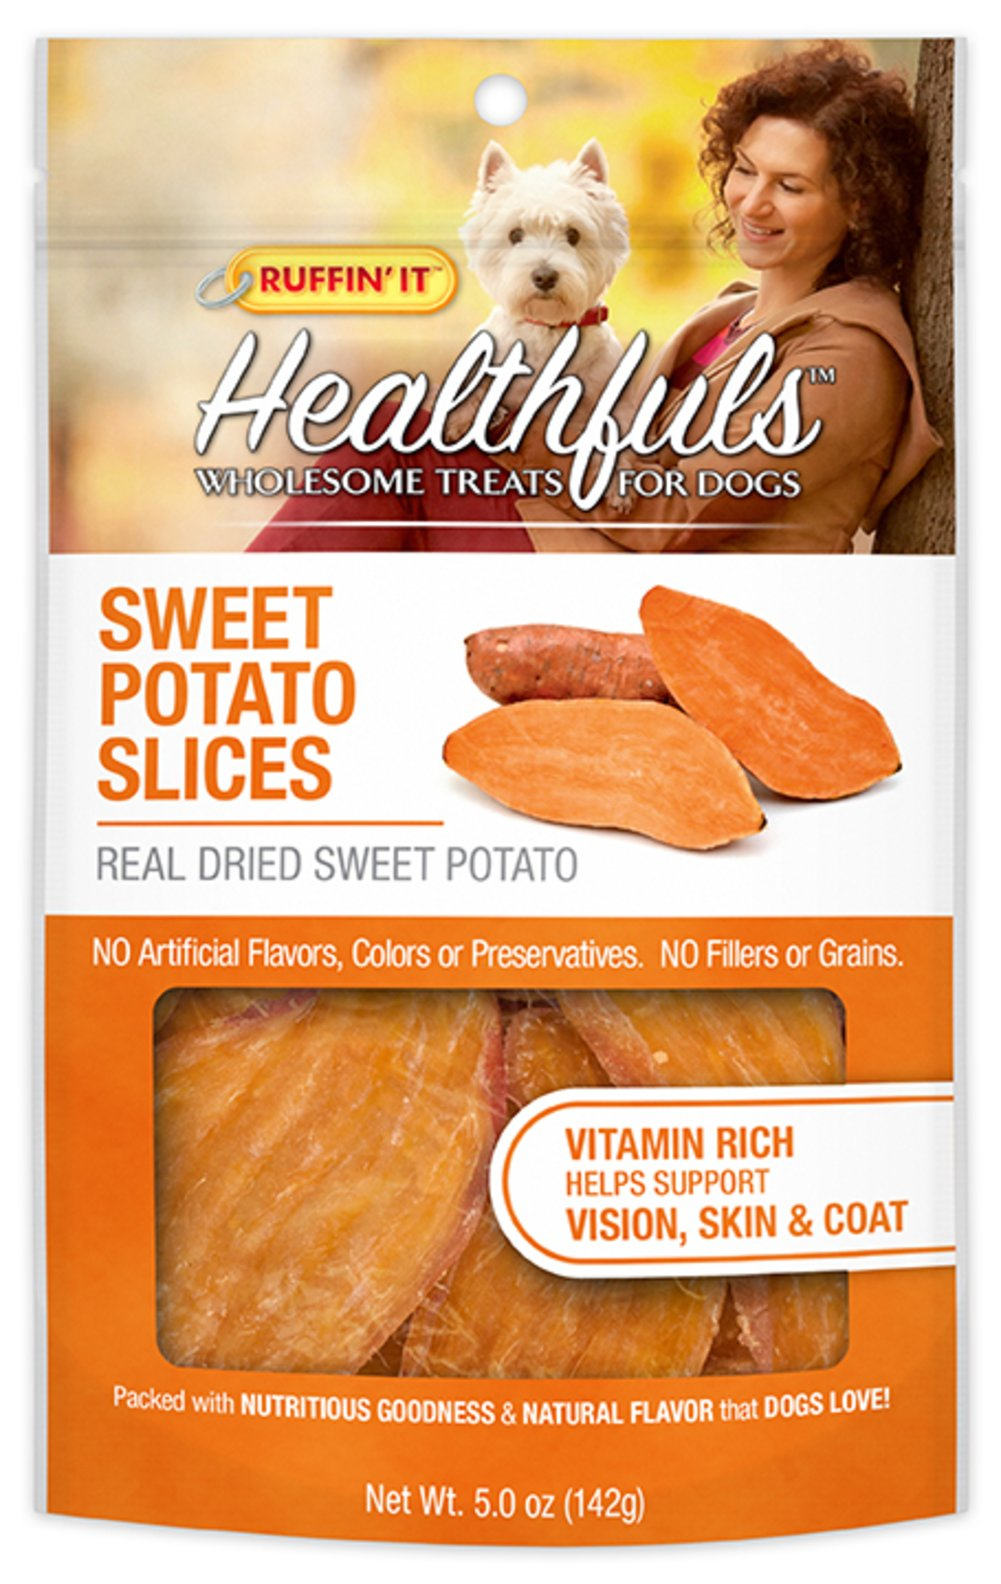 Healthfuls Wholesome Treats for Dogs Sweet Potato Slices <p><strong>From the Manufacturer's Label:</strong></p><p>Ruffin' It™ Healthfuls Sweet Potato Slices are packed with nutritious goodness and a natural sweet flavor that dogs love.  100% natural dried sweet potato slices. No artificial preservatives, no fillers, no grains and  no artificial flavors or colors.</p> 5 oz Bag  $4.49